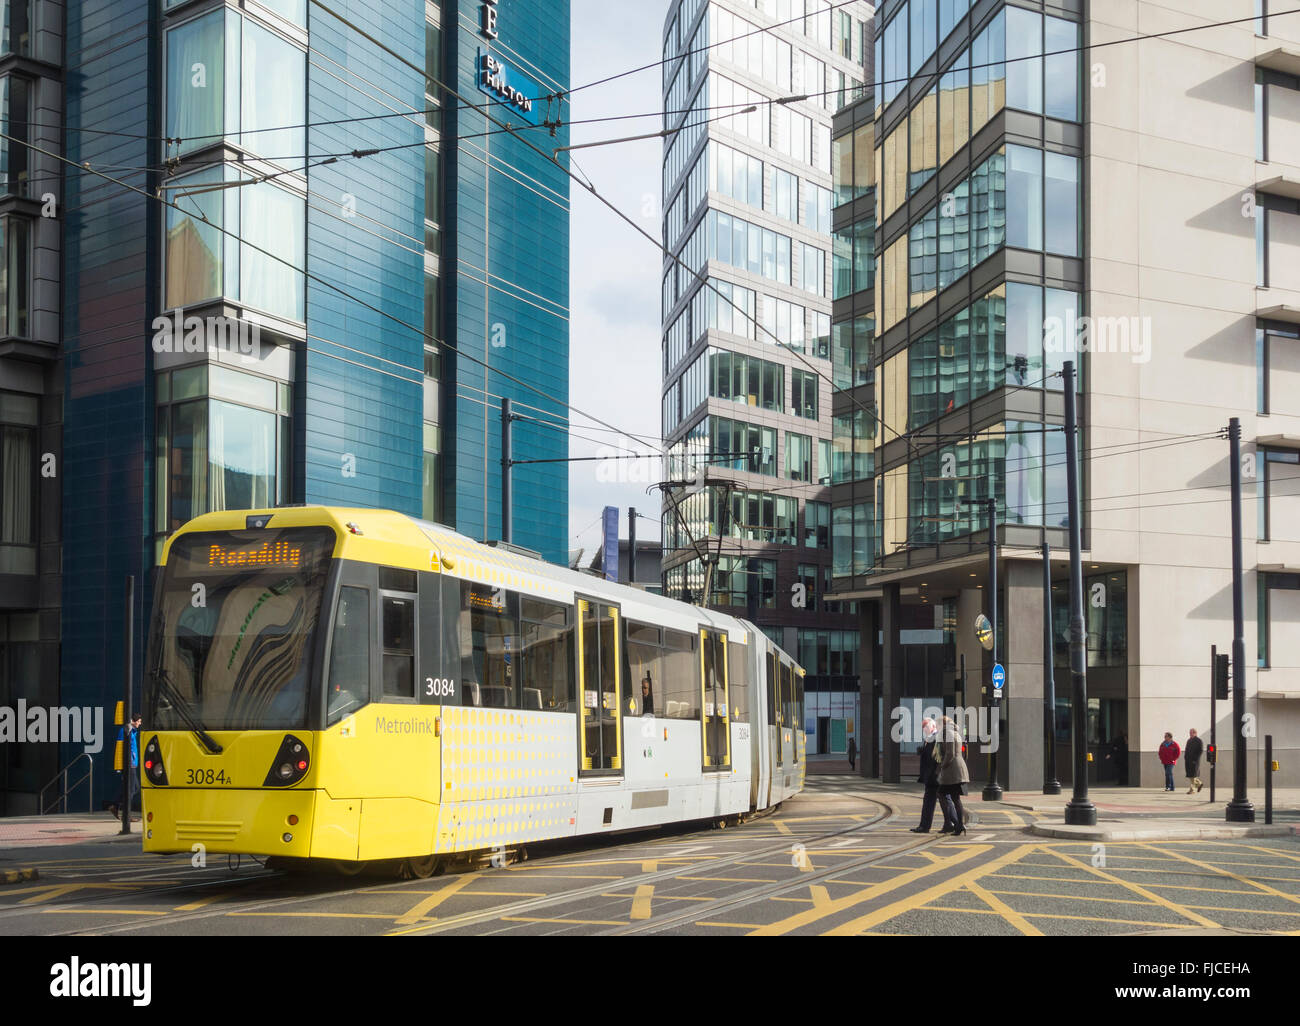 Tram passing Double Tree Hilton hotel, One Piccadilly Place, 1 Auburn Street., Manchester, United Kingdom - Stock Image